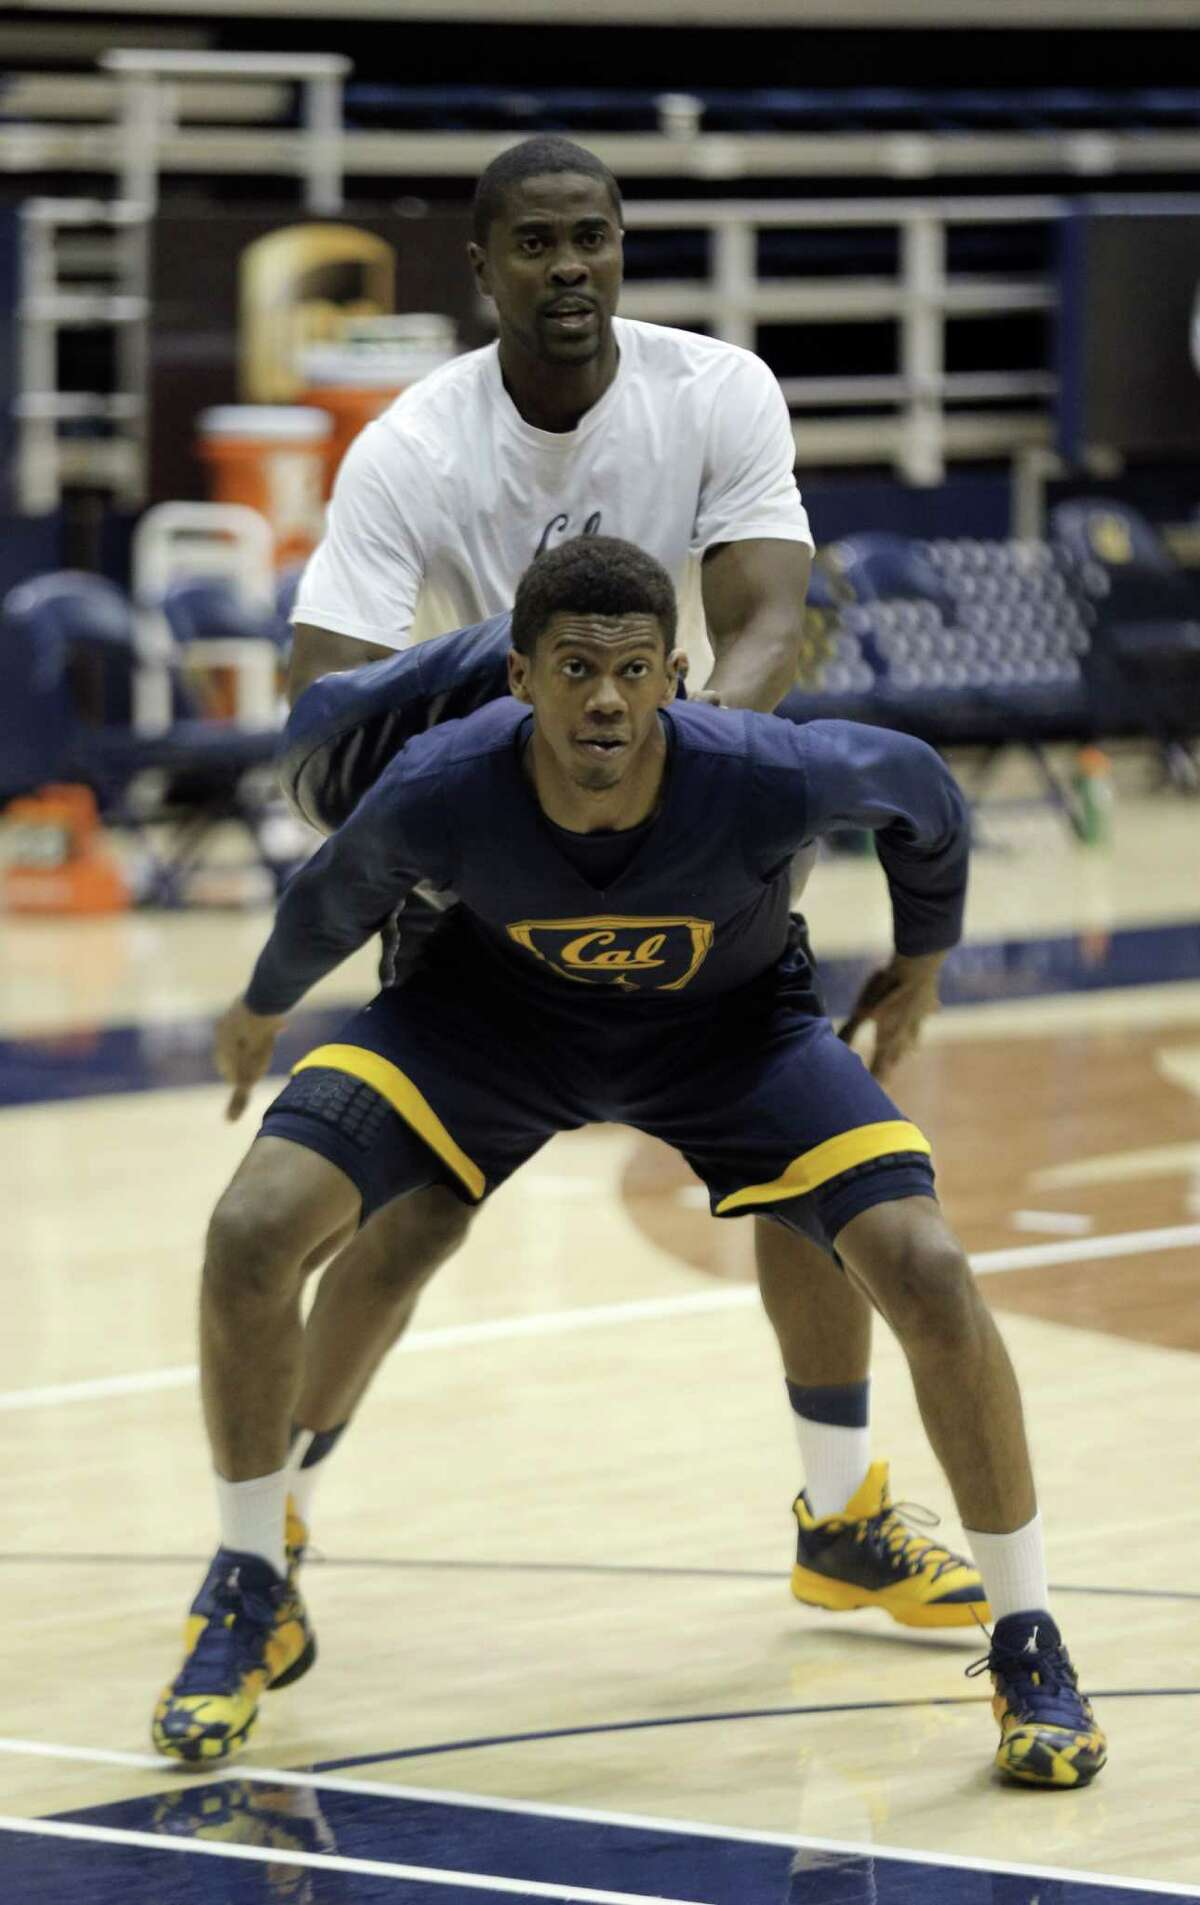 Tyrone Wallace (3) works with assistant coach Jon Harris during the Cal men's basketball practice at Haas Pavilion in Berkeley, Calif., on Tuesday, November 11, 2014.